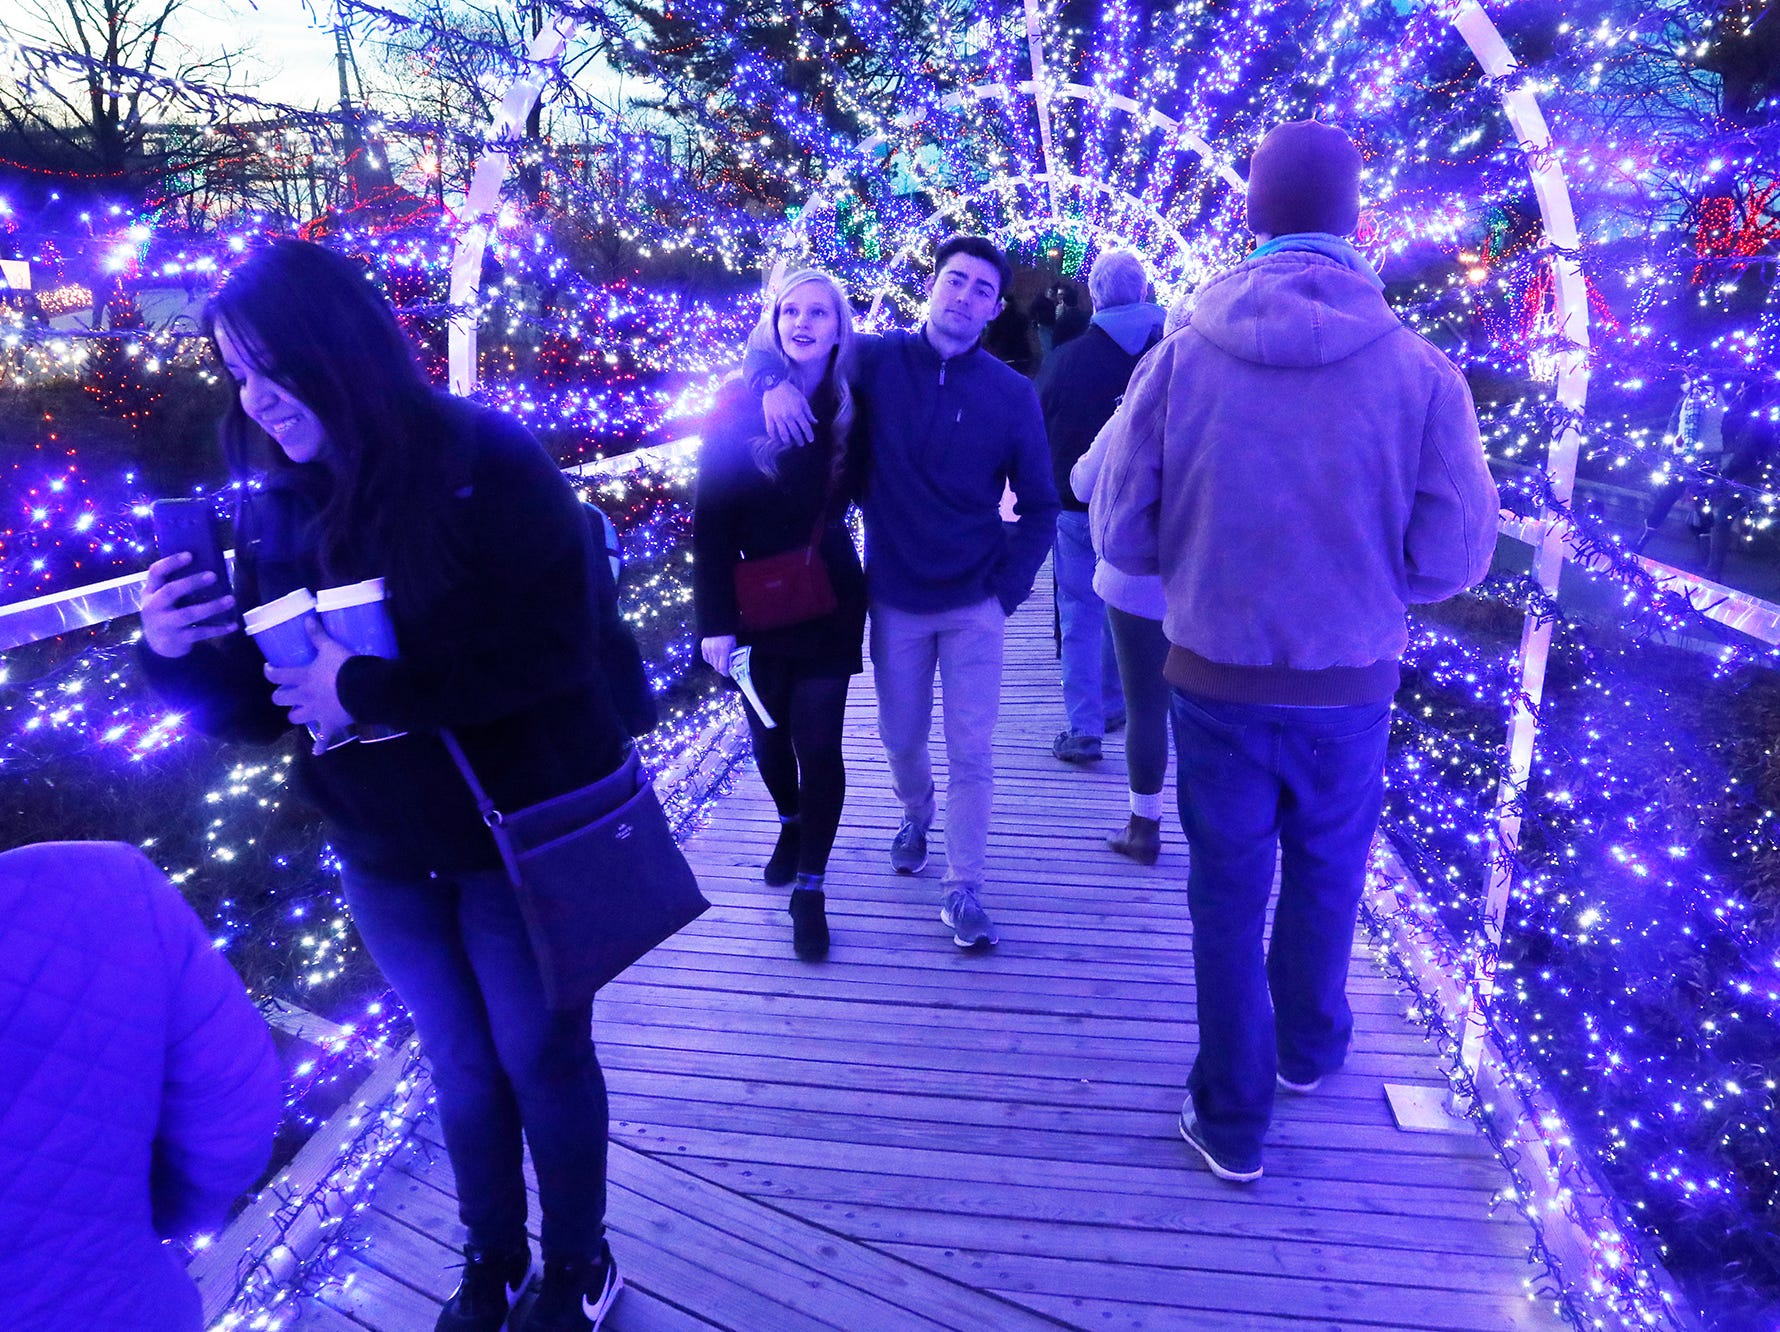 Guests stroll through a lighted tunnel during Christmas at the Indianapolis Zoo on Wednesday, Dec. 19, 2018.